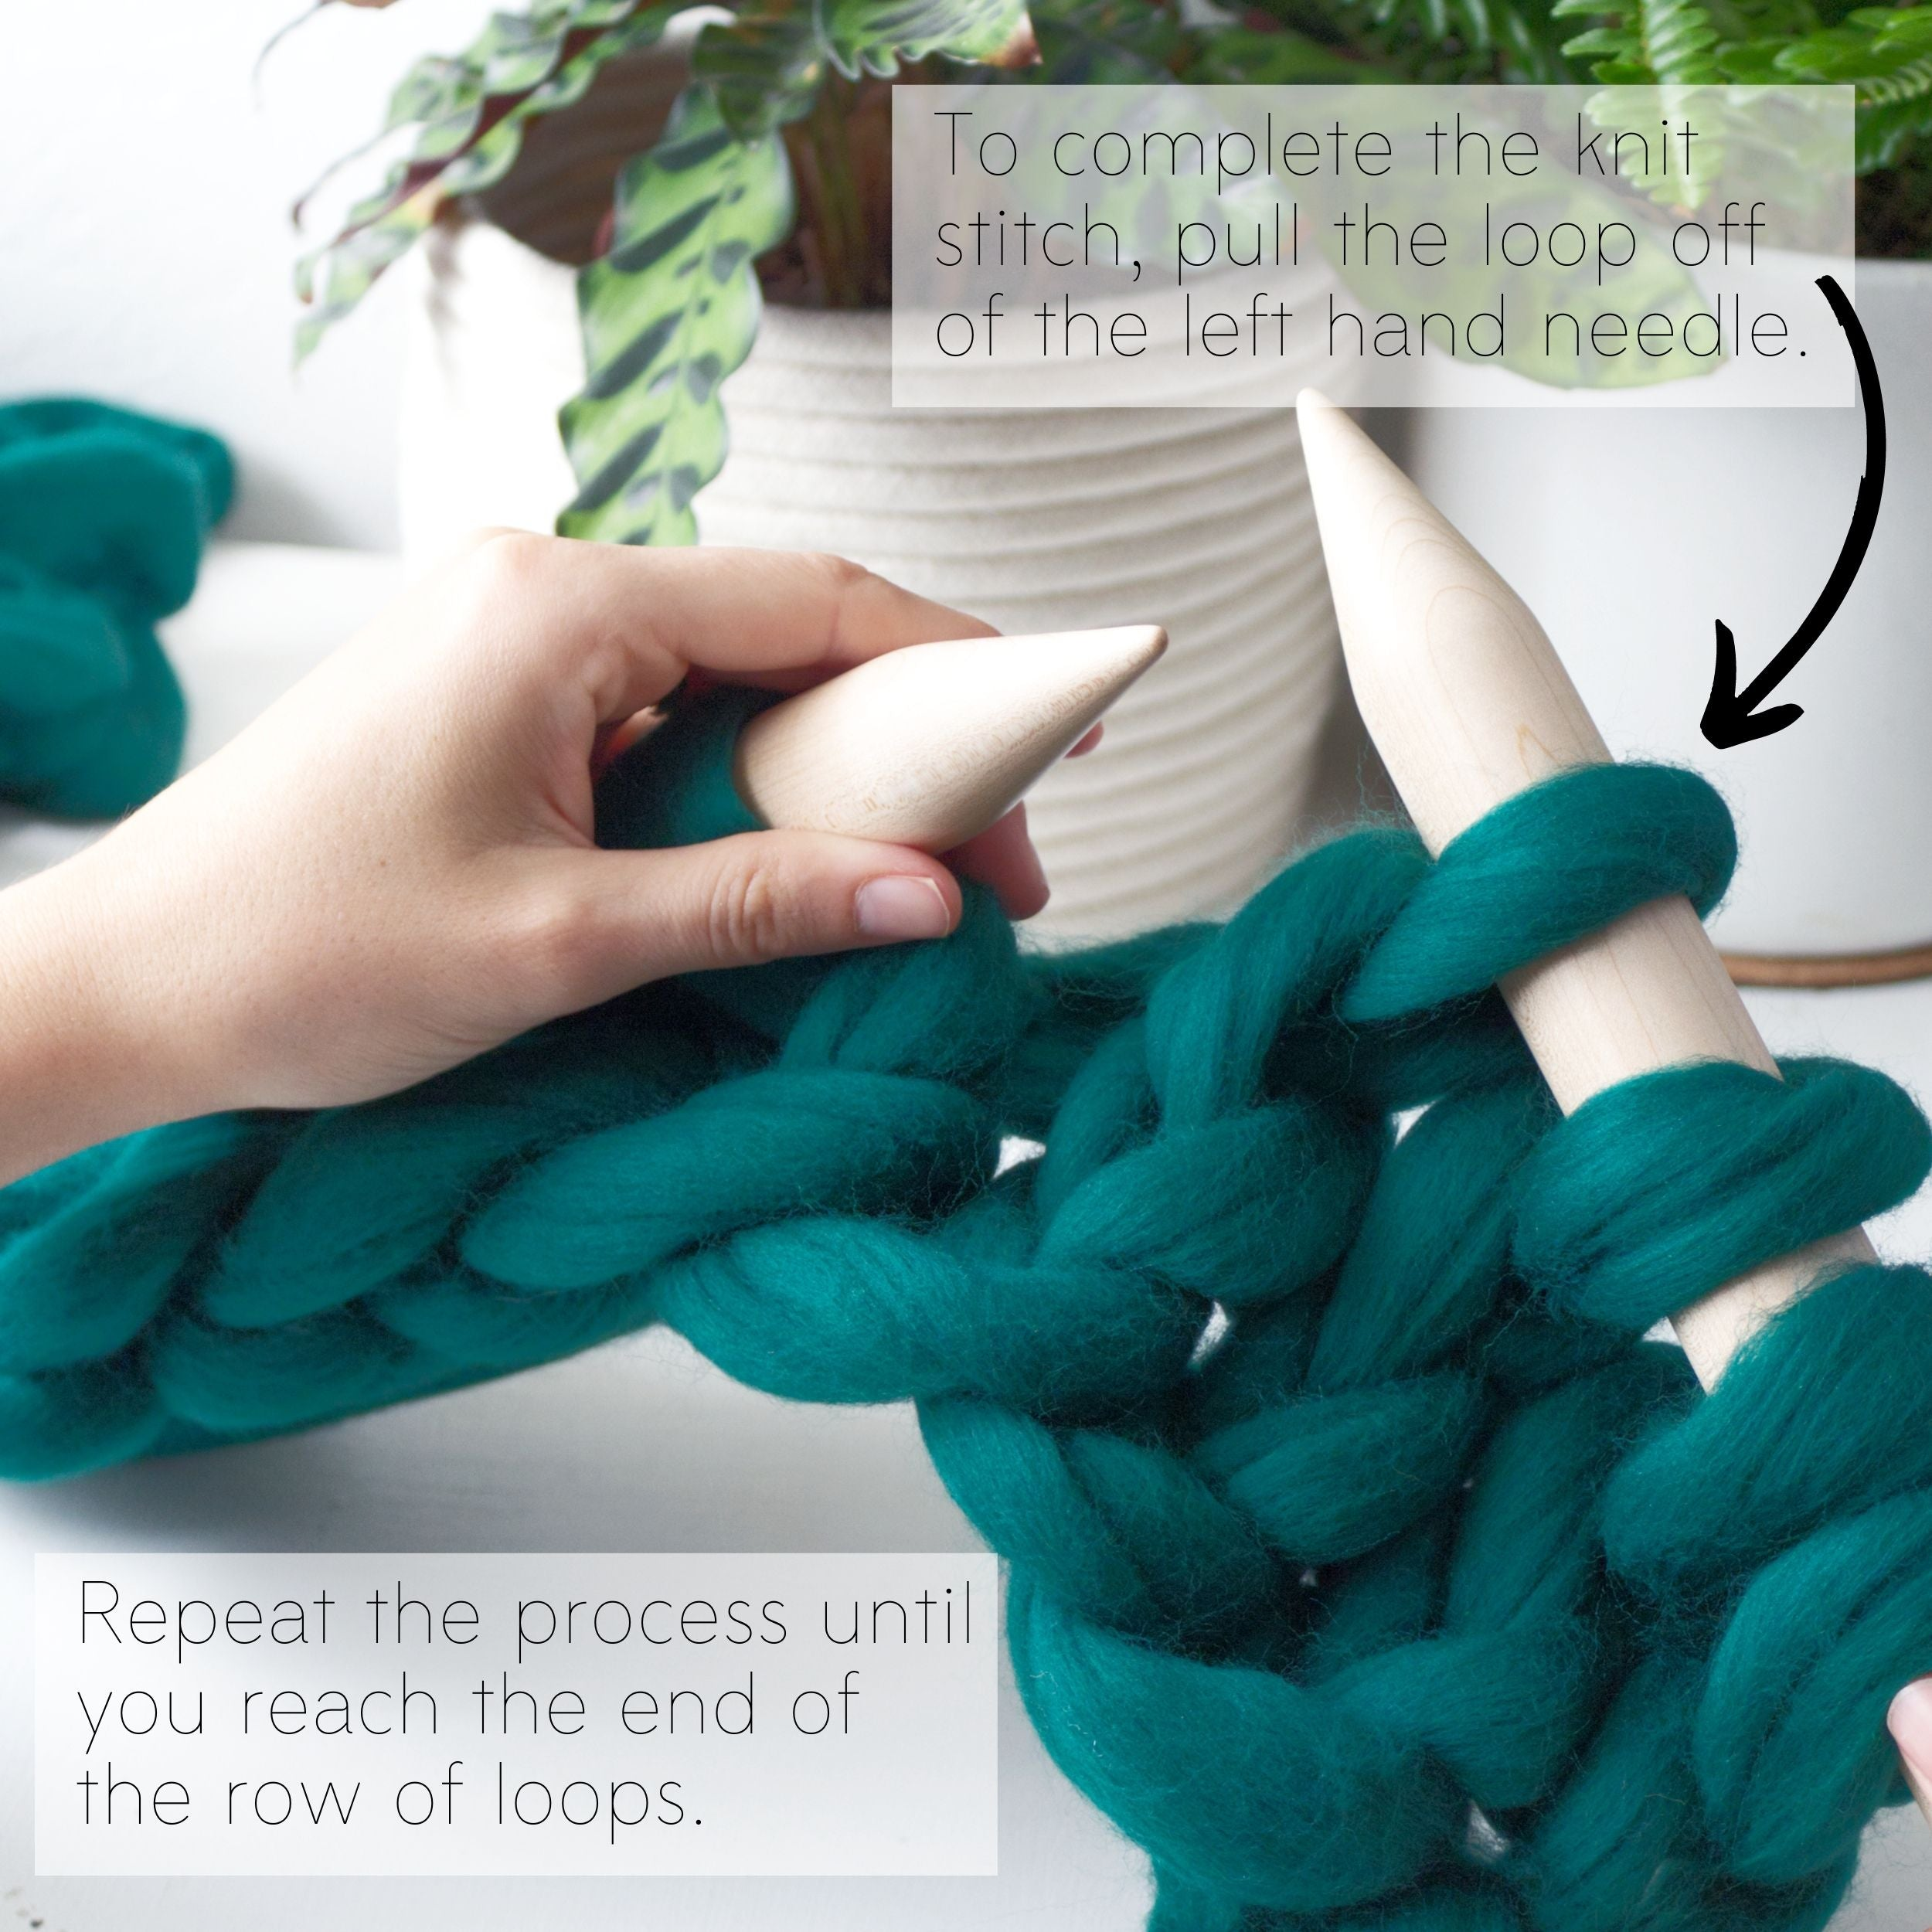 How to make a DIY chunky knit blanket, step 5.4